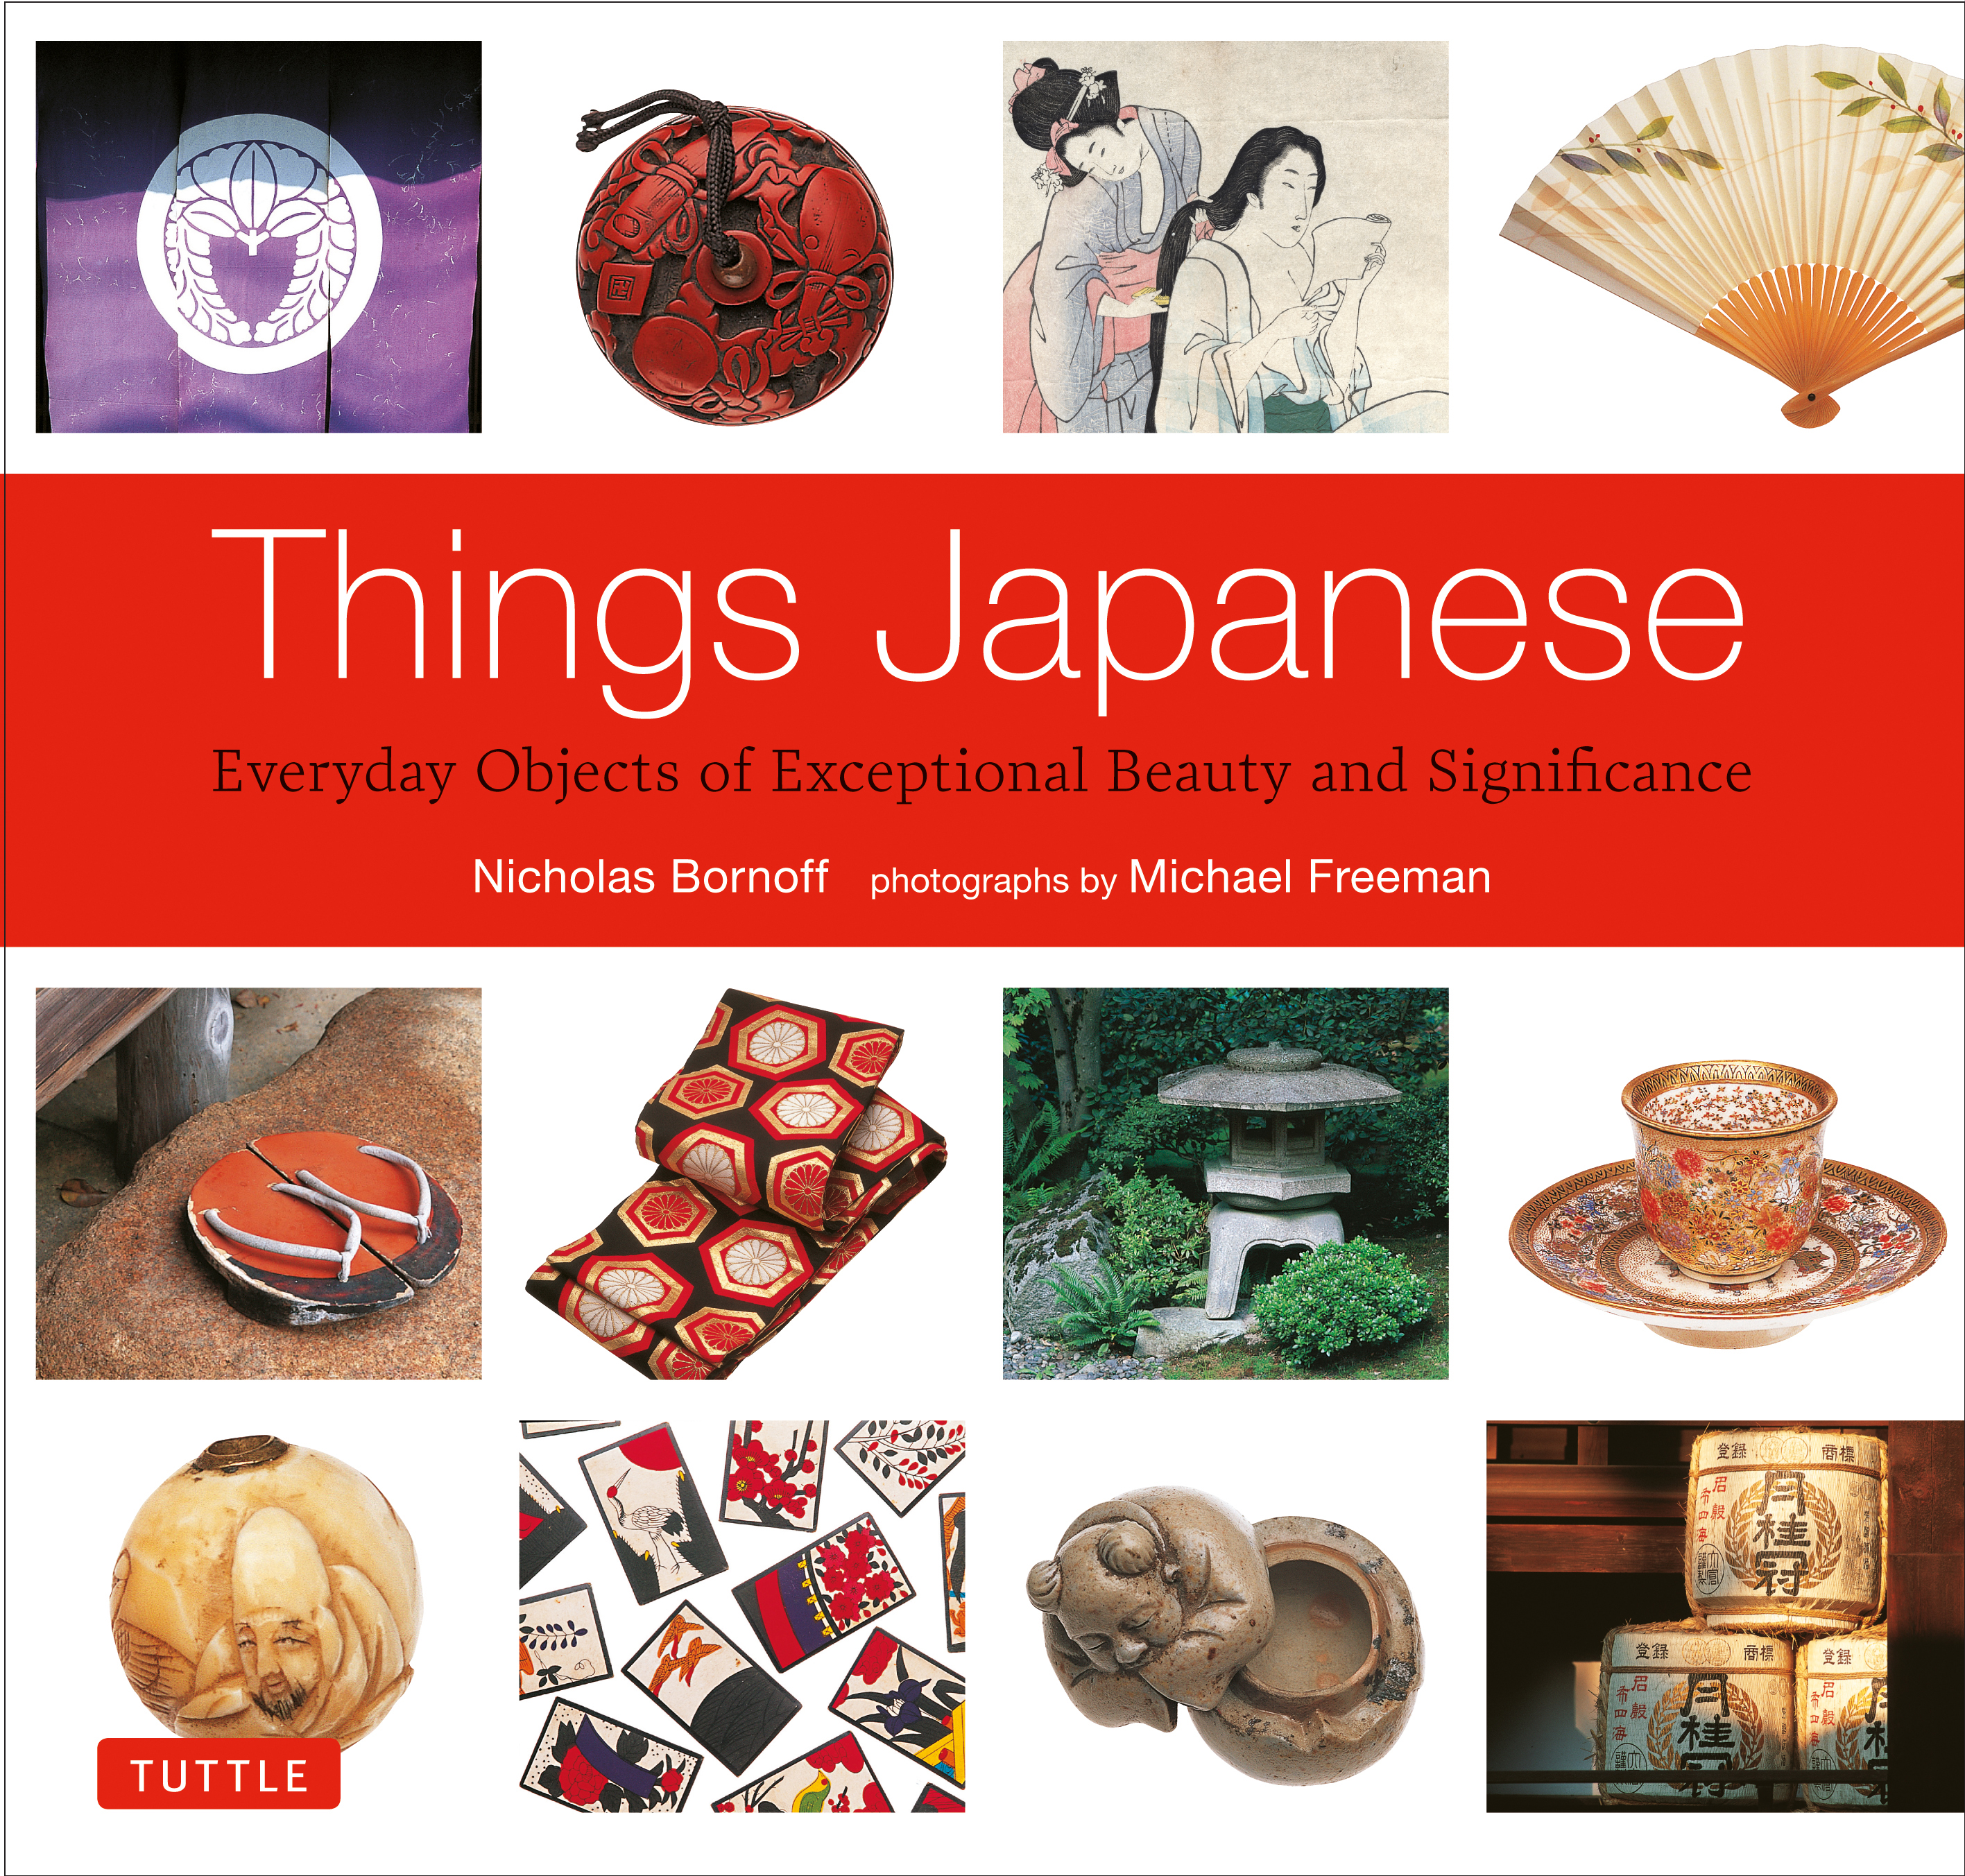 Things japanese 9784805313039 hr